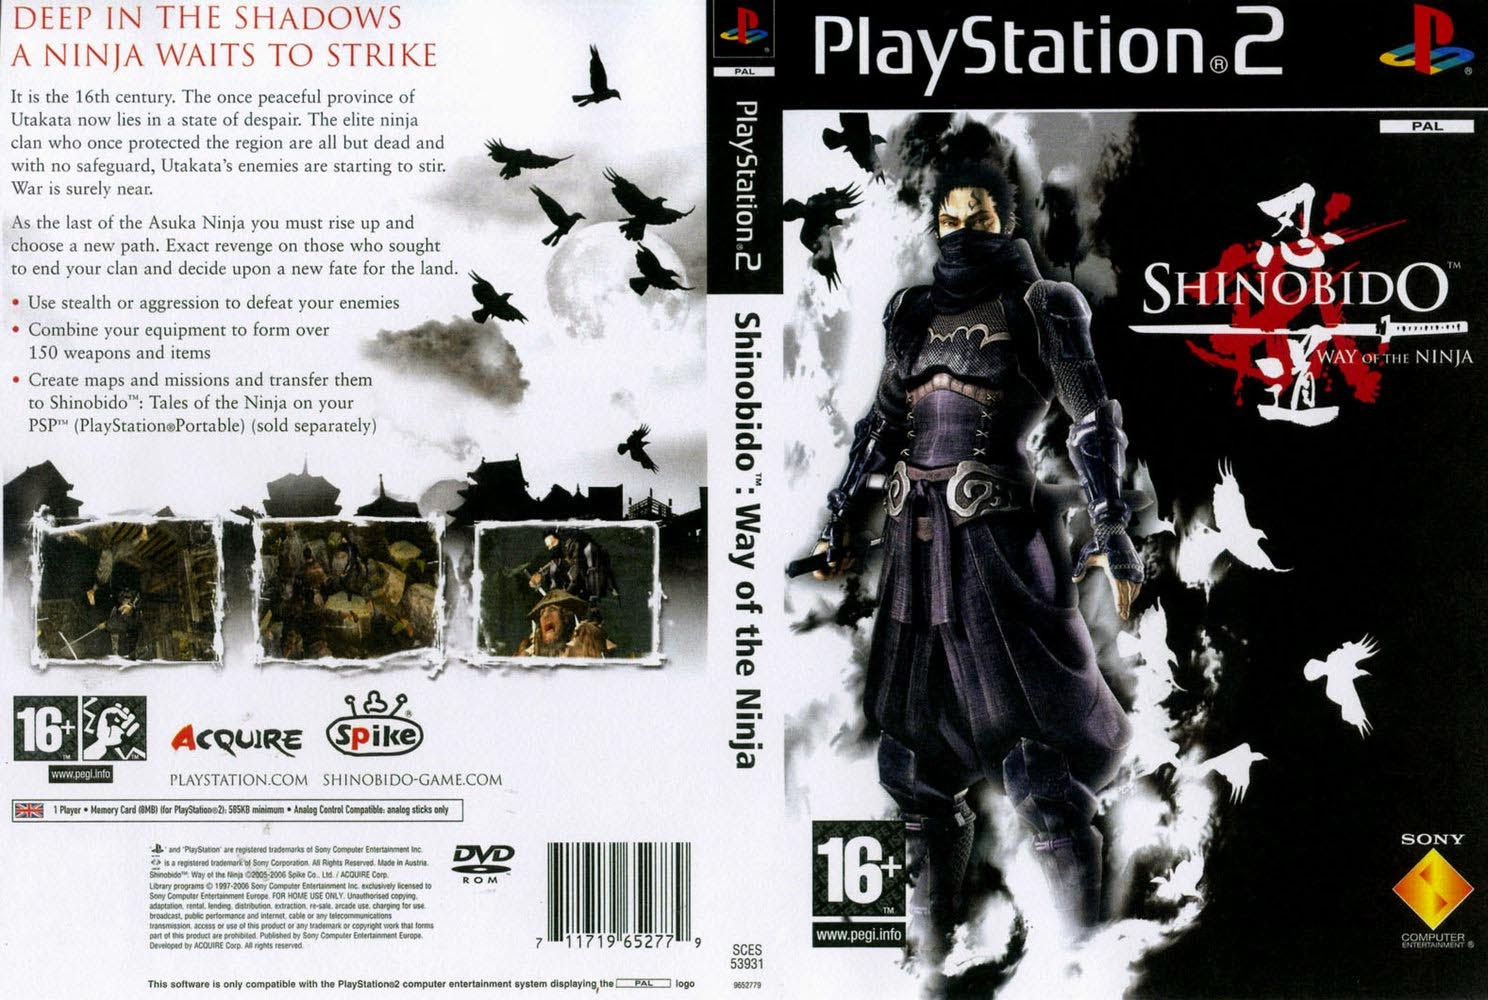 shinobido way of the ninja ps2